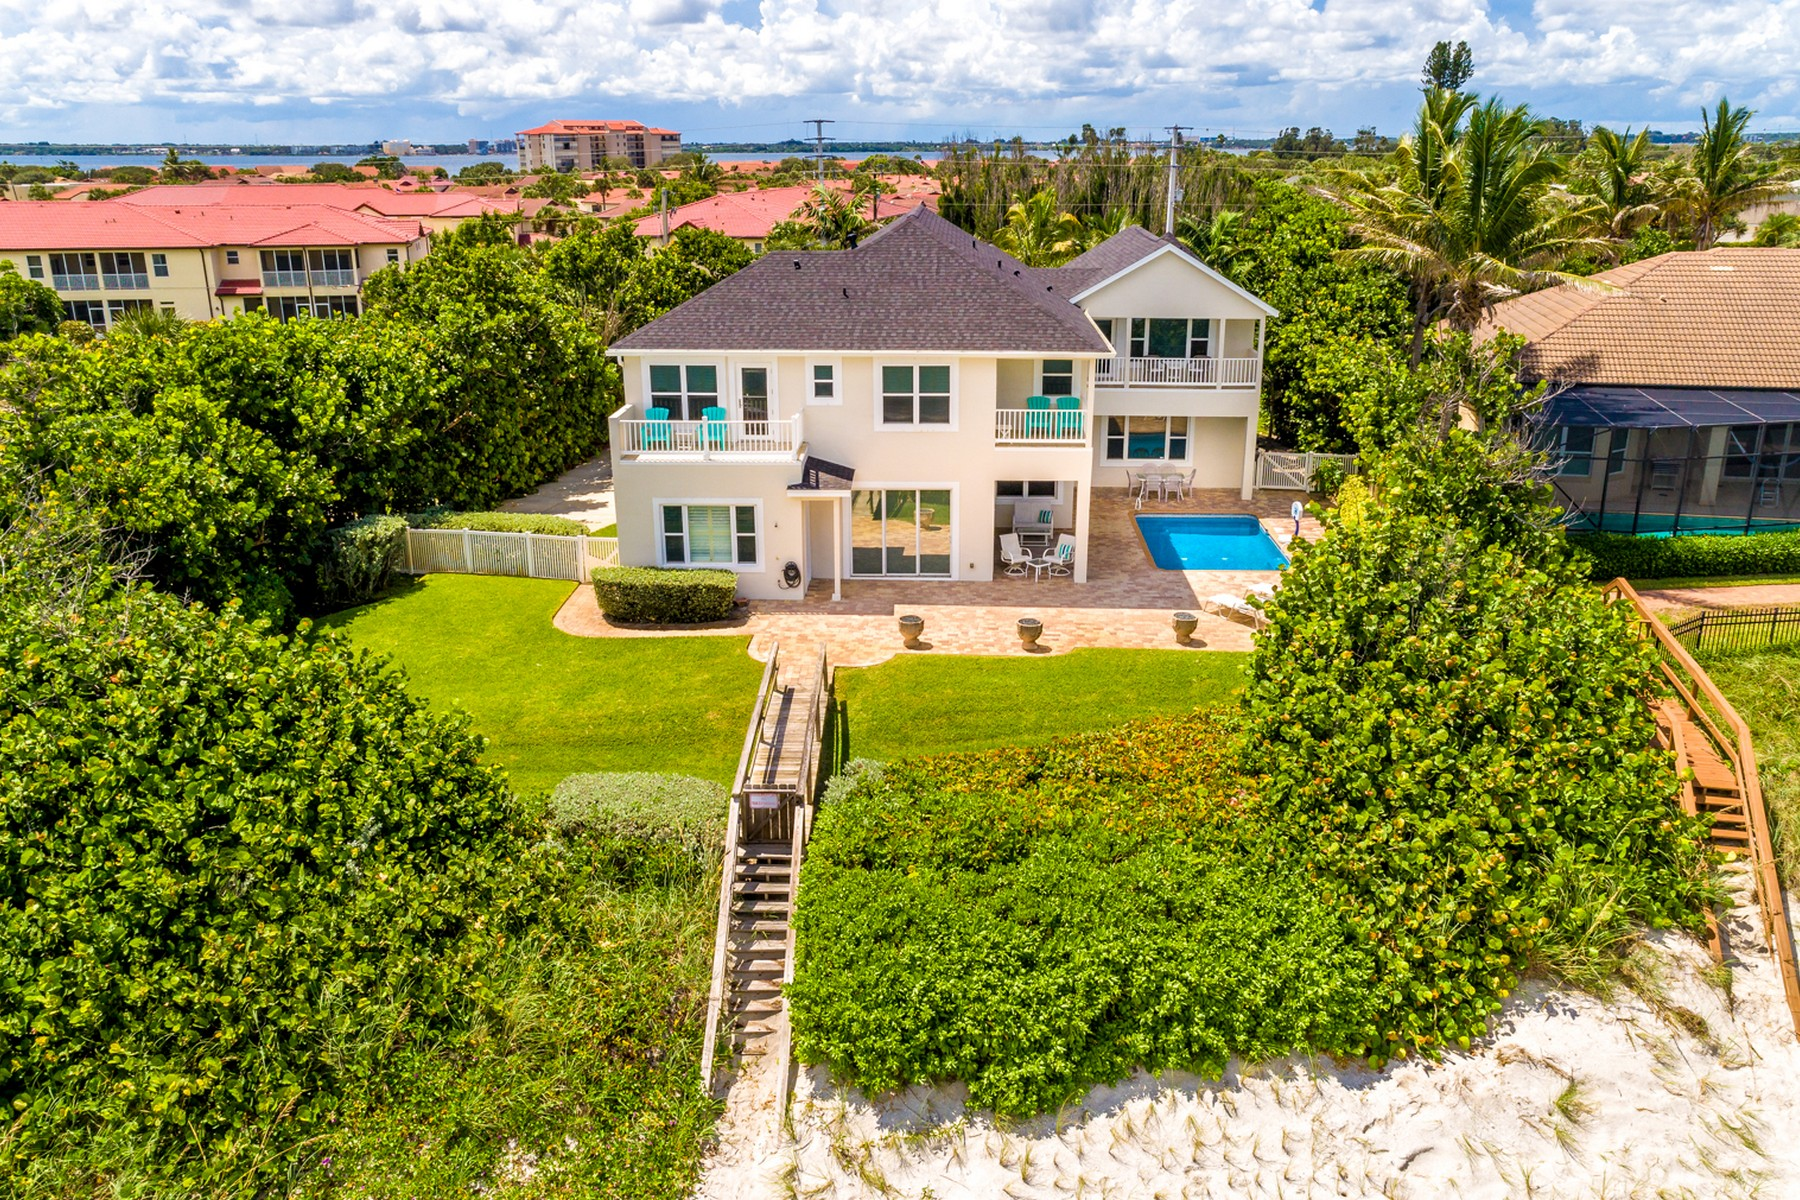 Single Family Home for Sale at Large Oceanfront home in Ideal Location 3185 Highway A1A Melbourne Beach, Florida 32951 United States